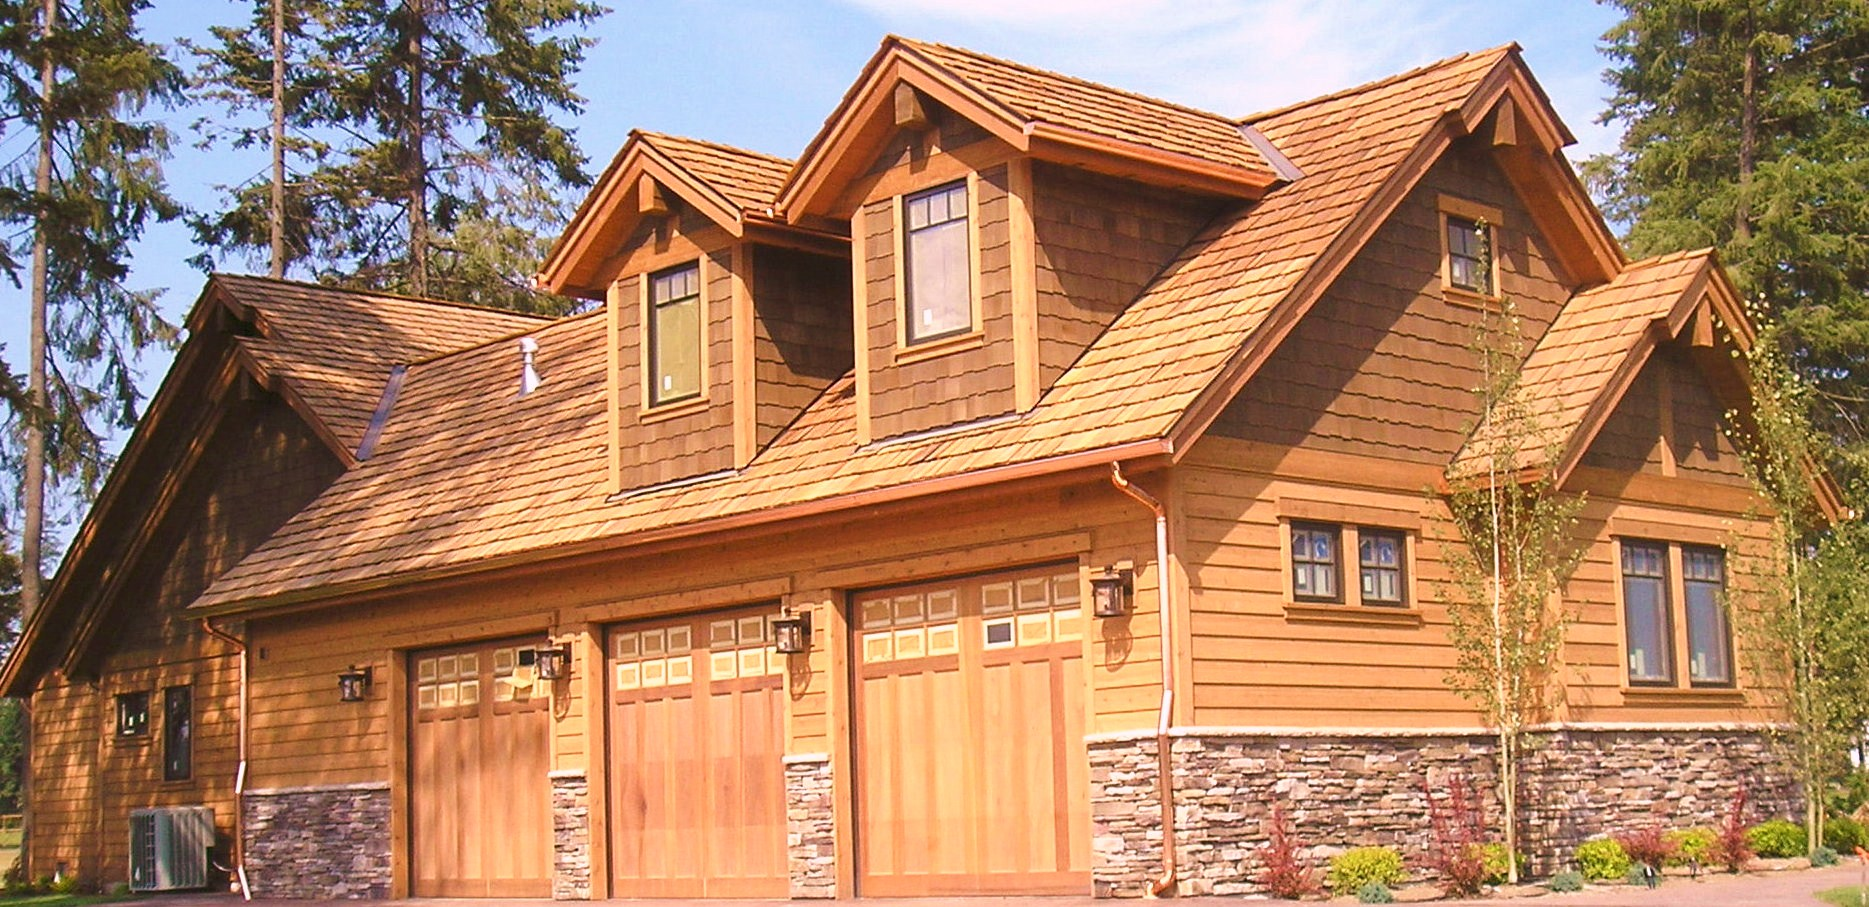 Virginia roofing siding company cedar siding for Stone and cedar homes